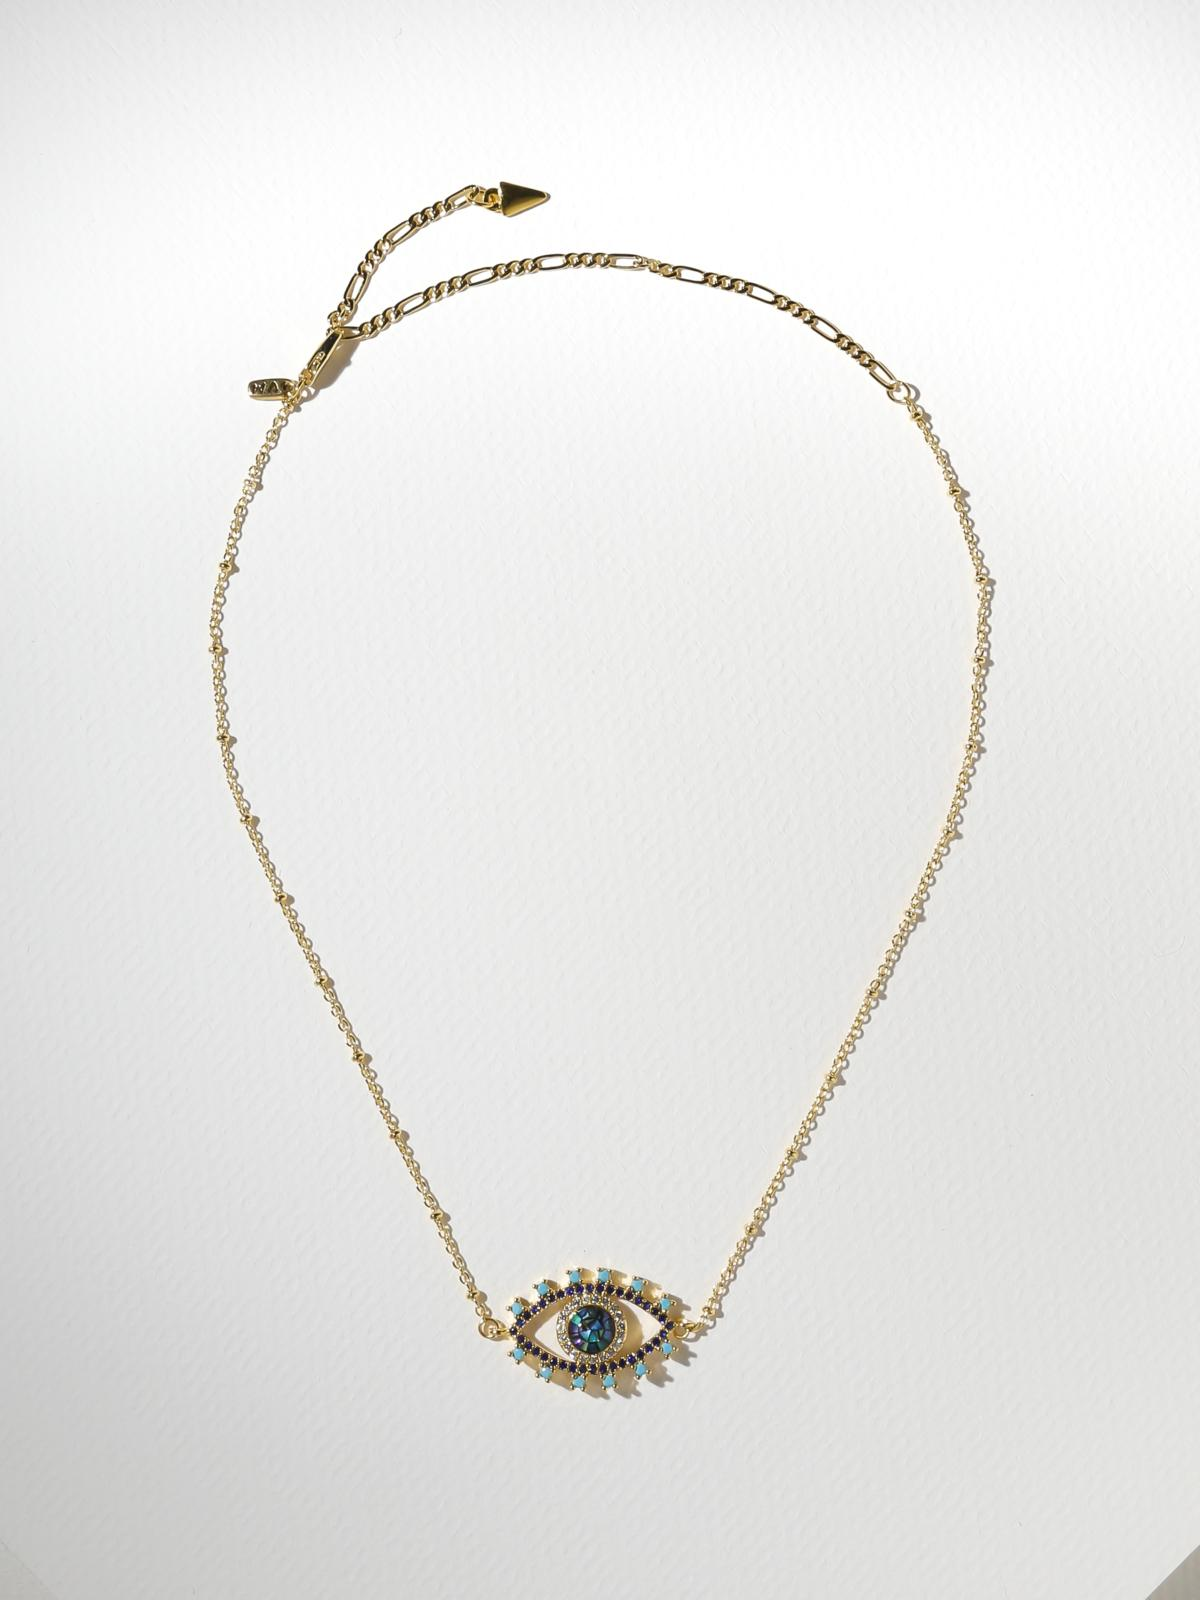 The Abalone Eye Necklace